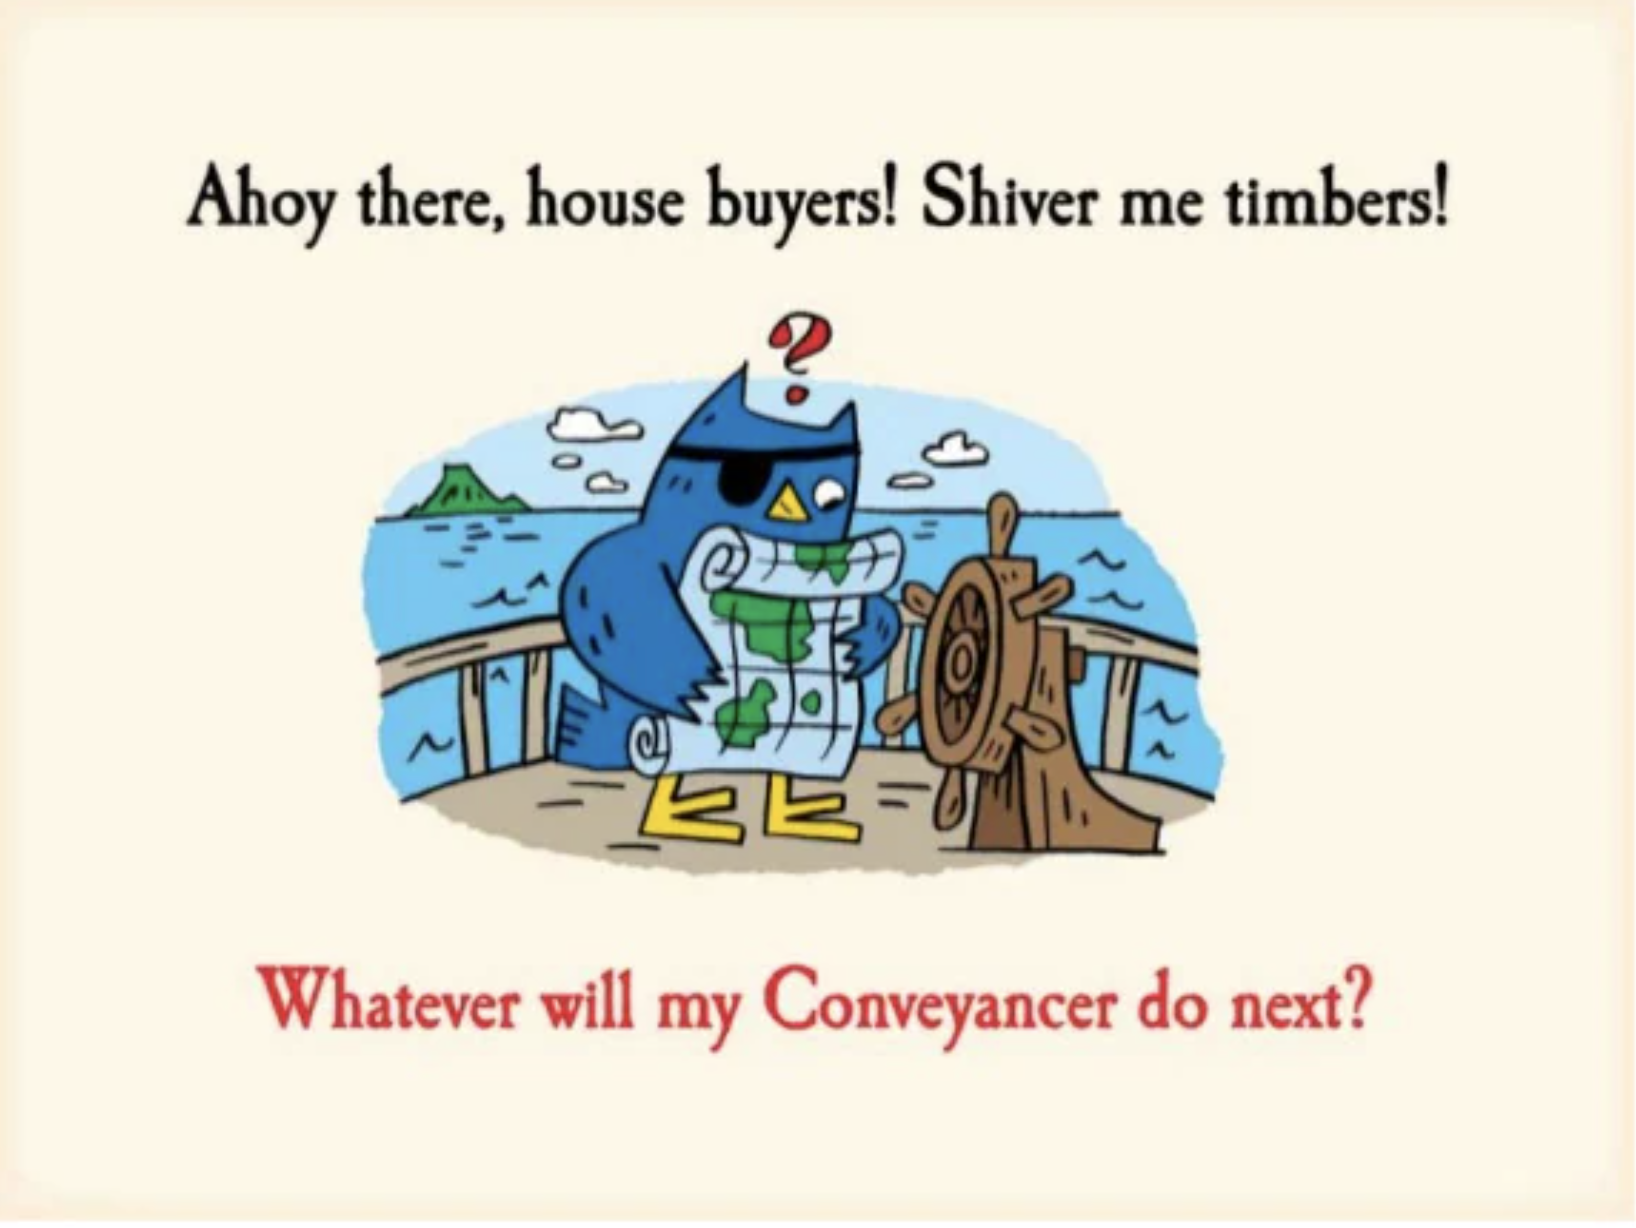 https://www.slideshare.net/paulhajek/ahoy-there-house-buyers-grab-yourself-a-conveyancing-guide